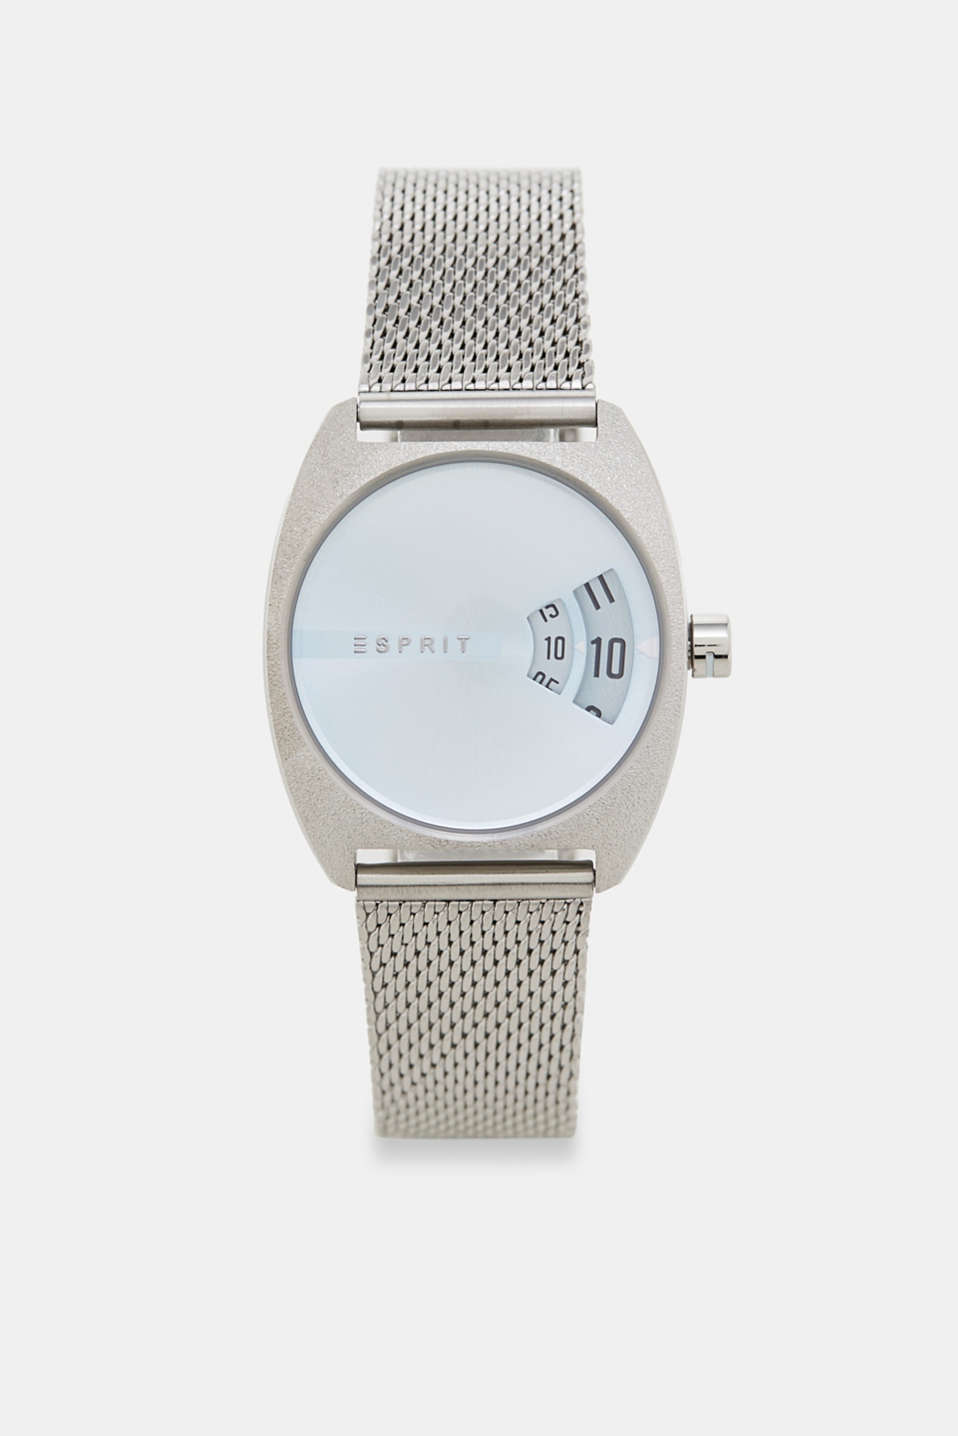 Esprit - Steel digital watch with a Milanese strap